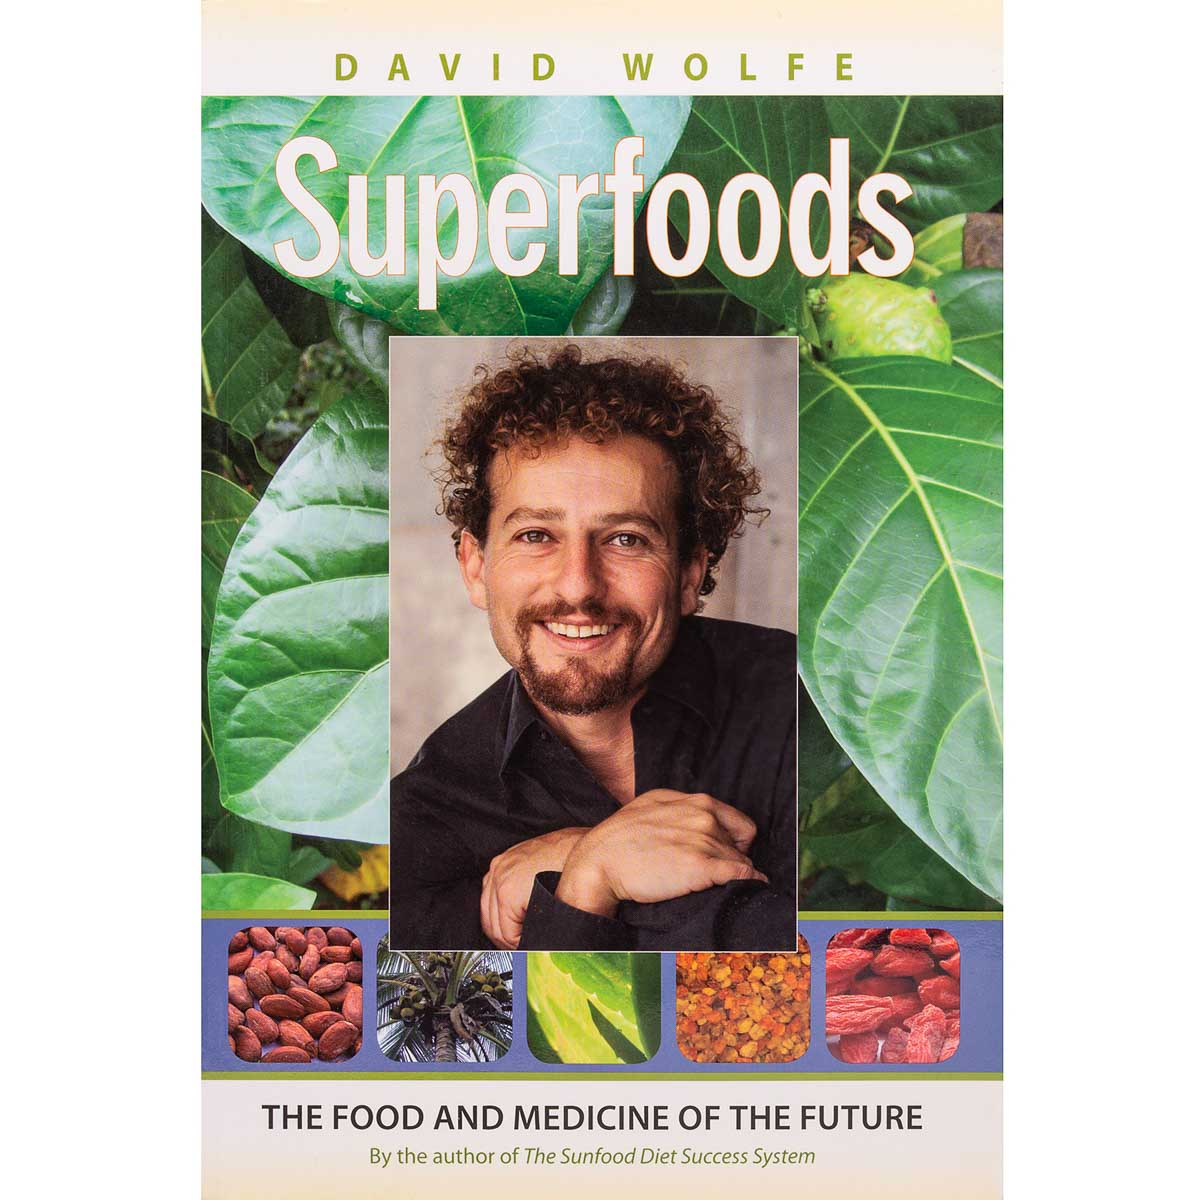 Superfoods (David Wolfe)